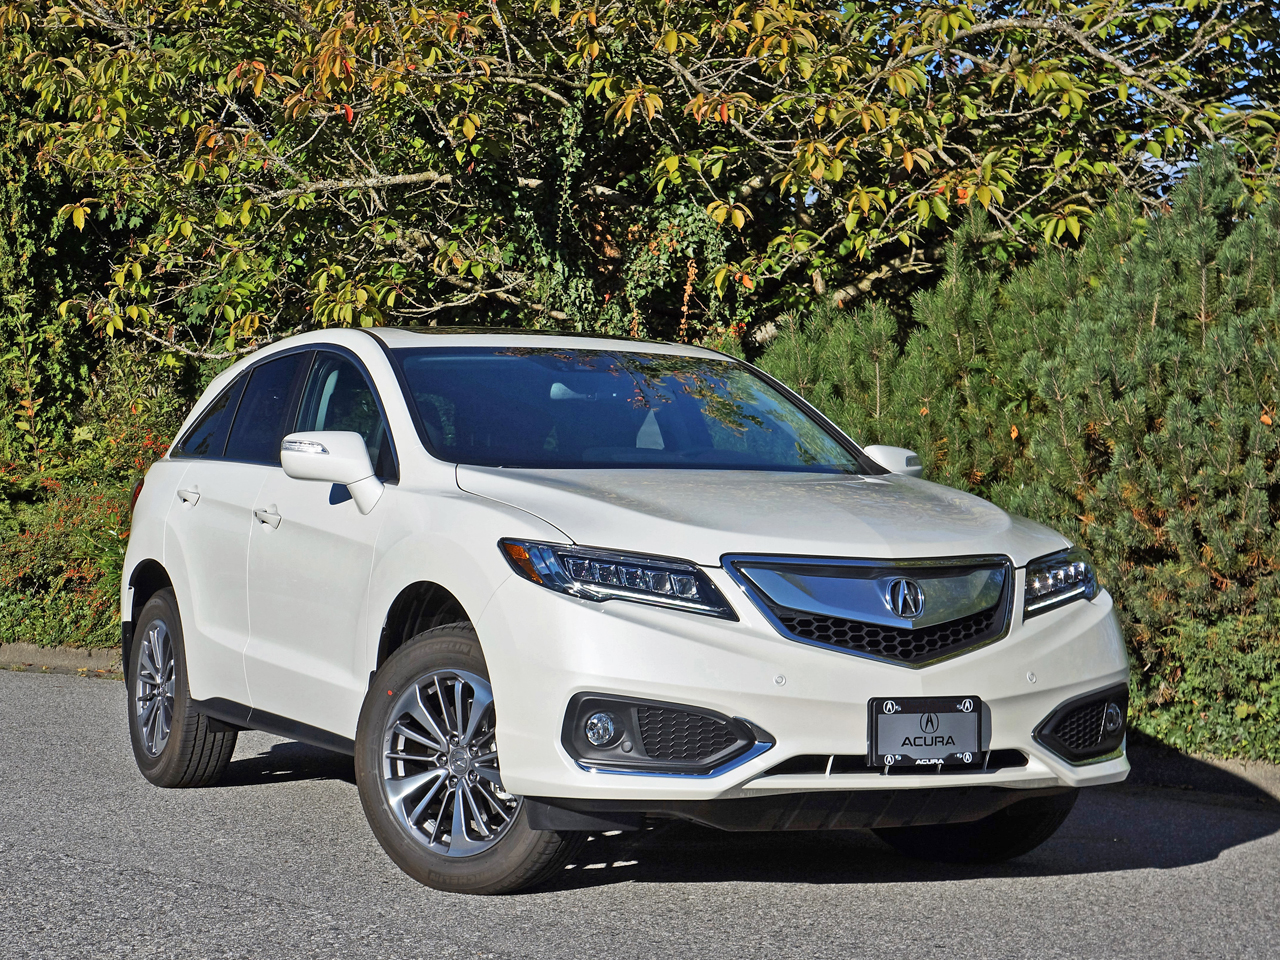 review and techweirdo acura release rdx date specs